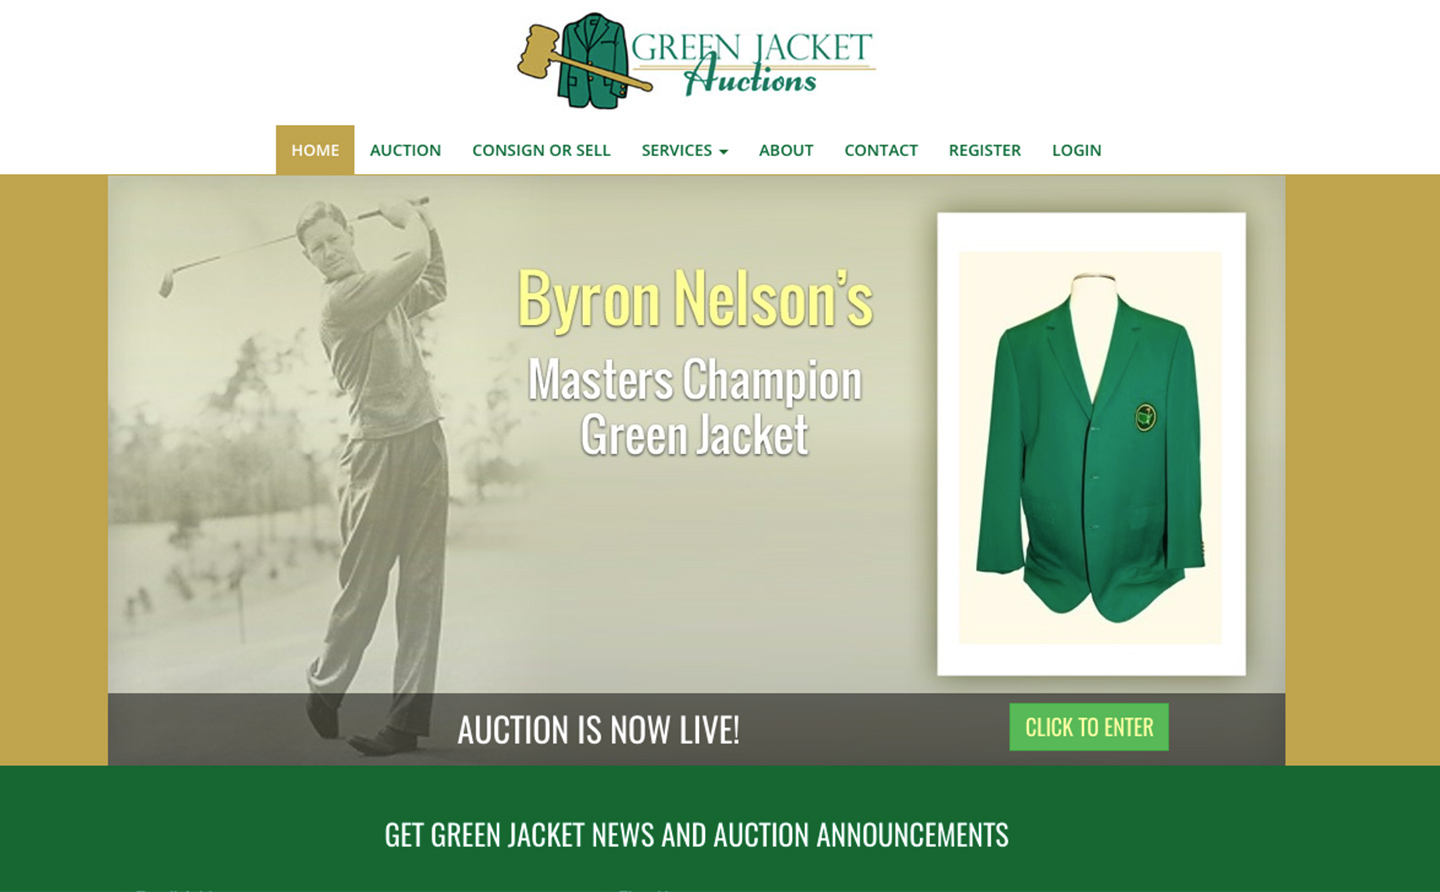 Augusta National Golf Club Sues Auction House Selling Green Jackets